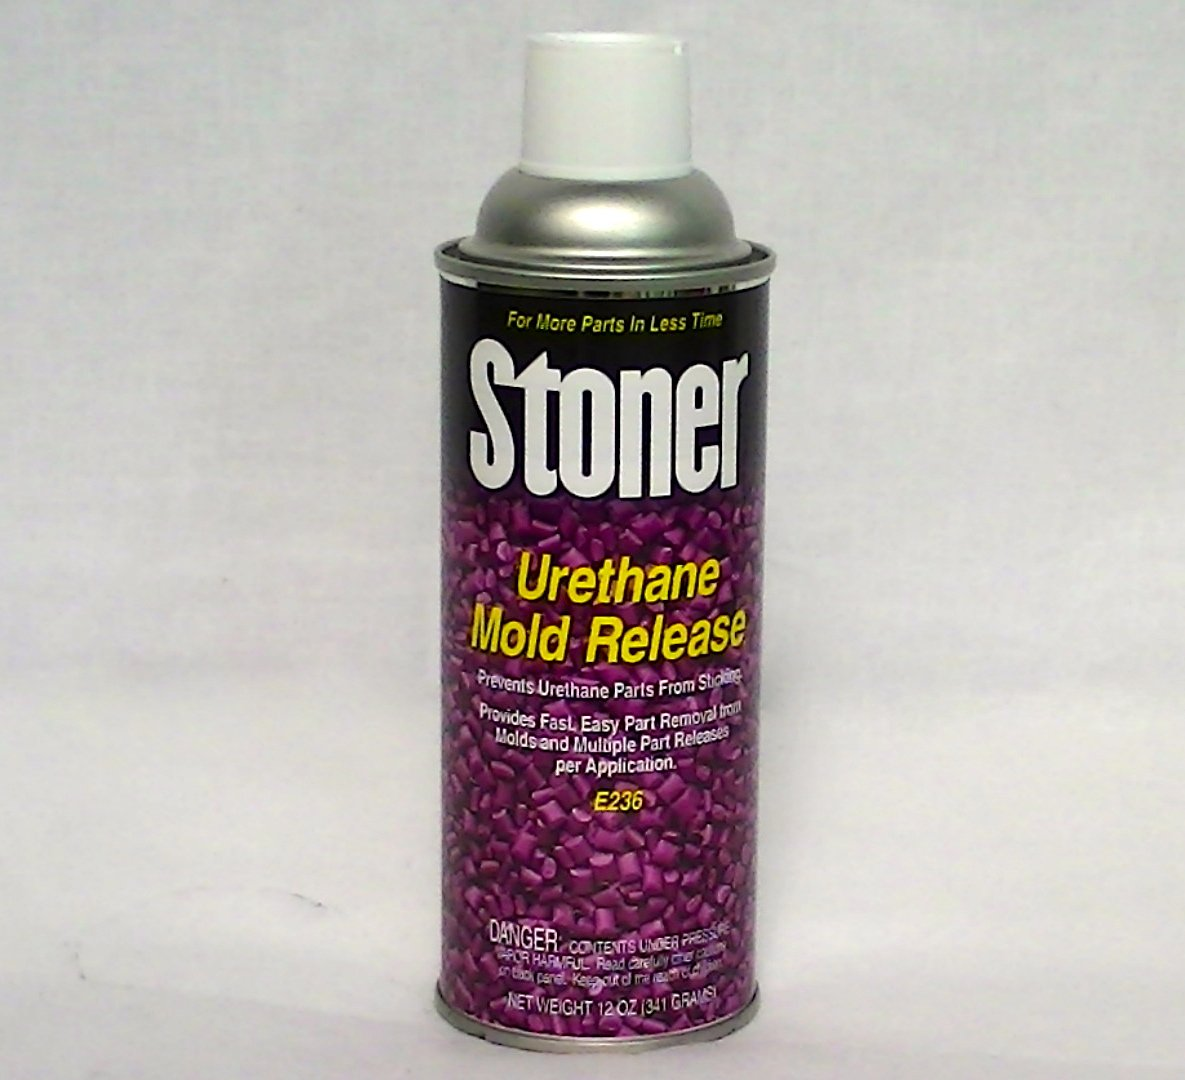 Stoner E-236 Urethan Mold Release case of 12 - 12 oz cans